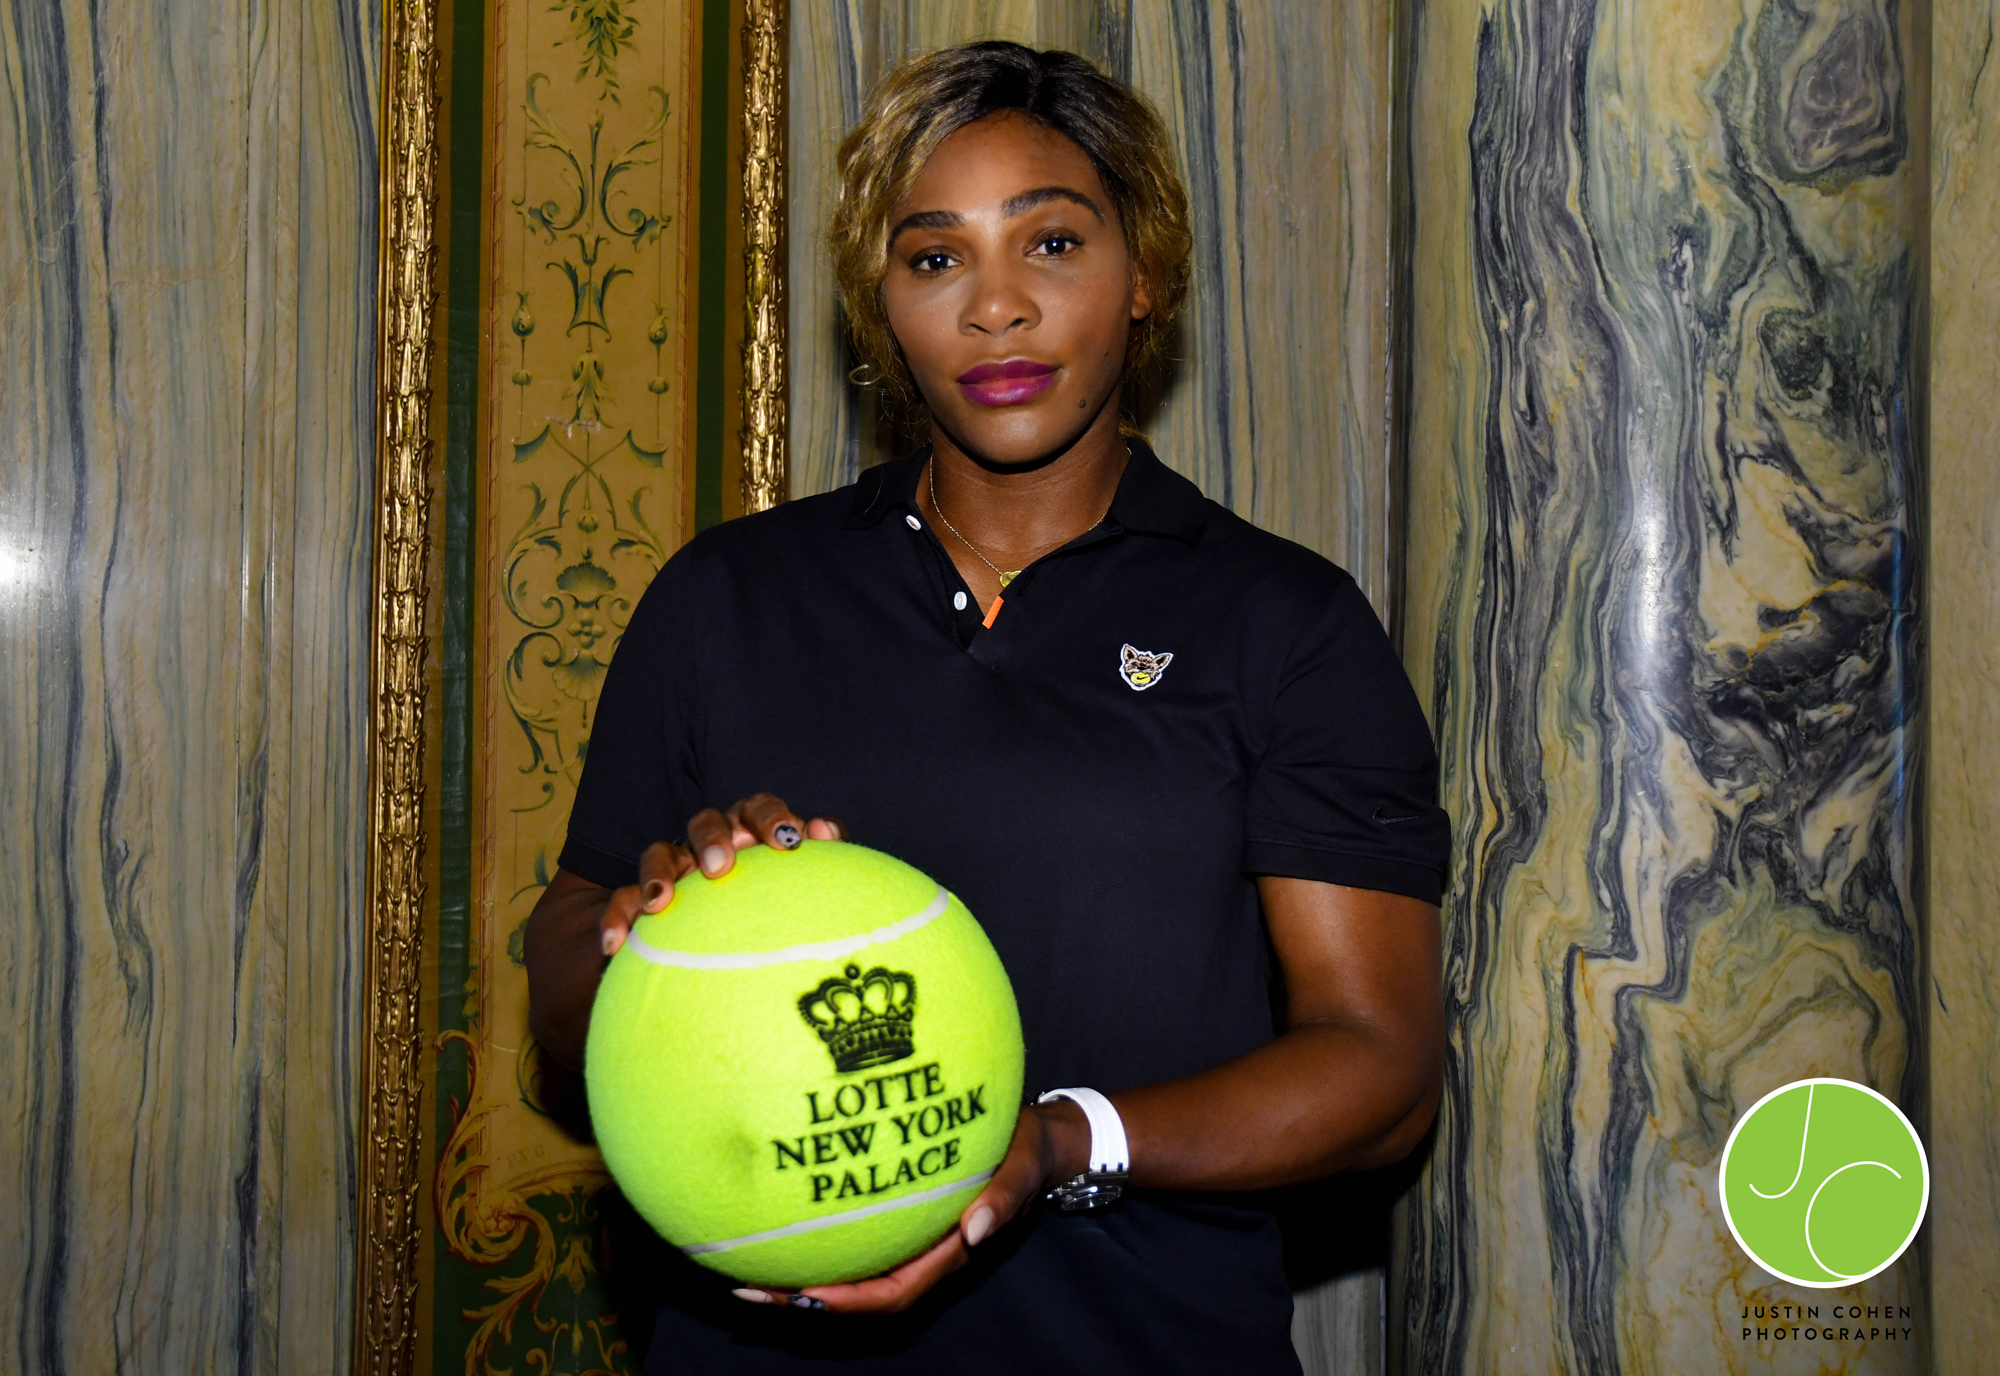 Serena Williams at the Lotte New York Palace event in New York City during the US Open Tennis Championships